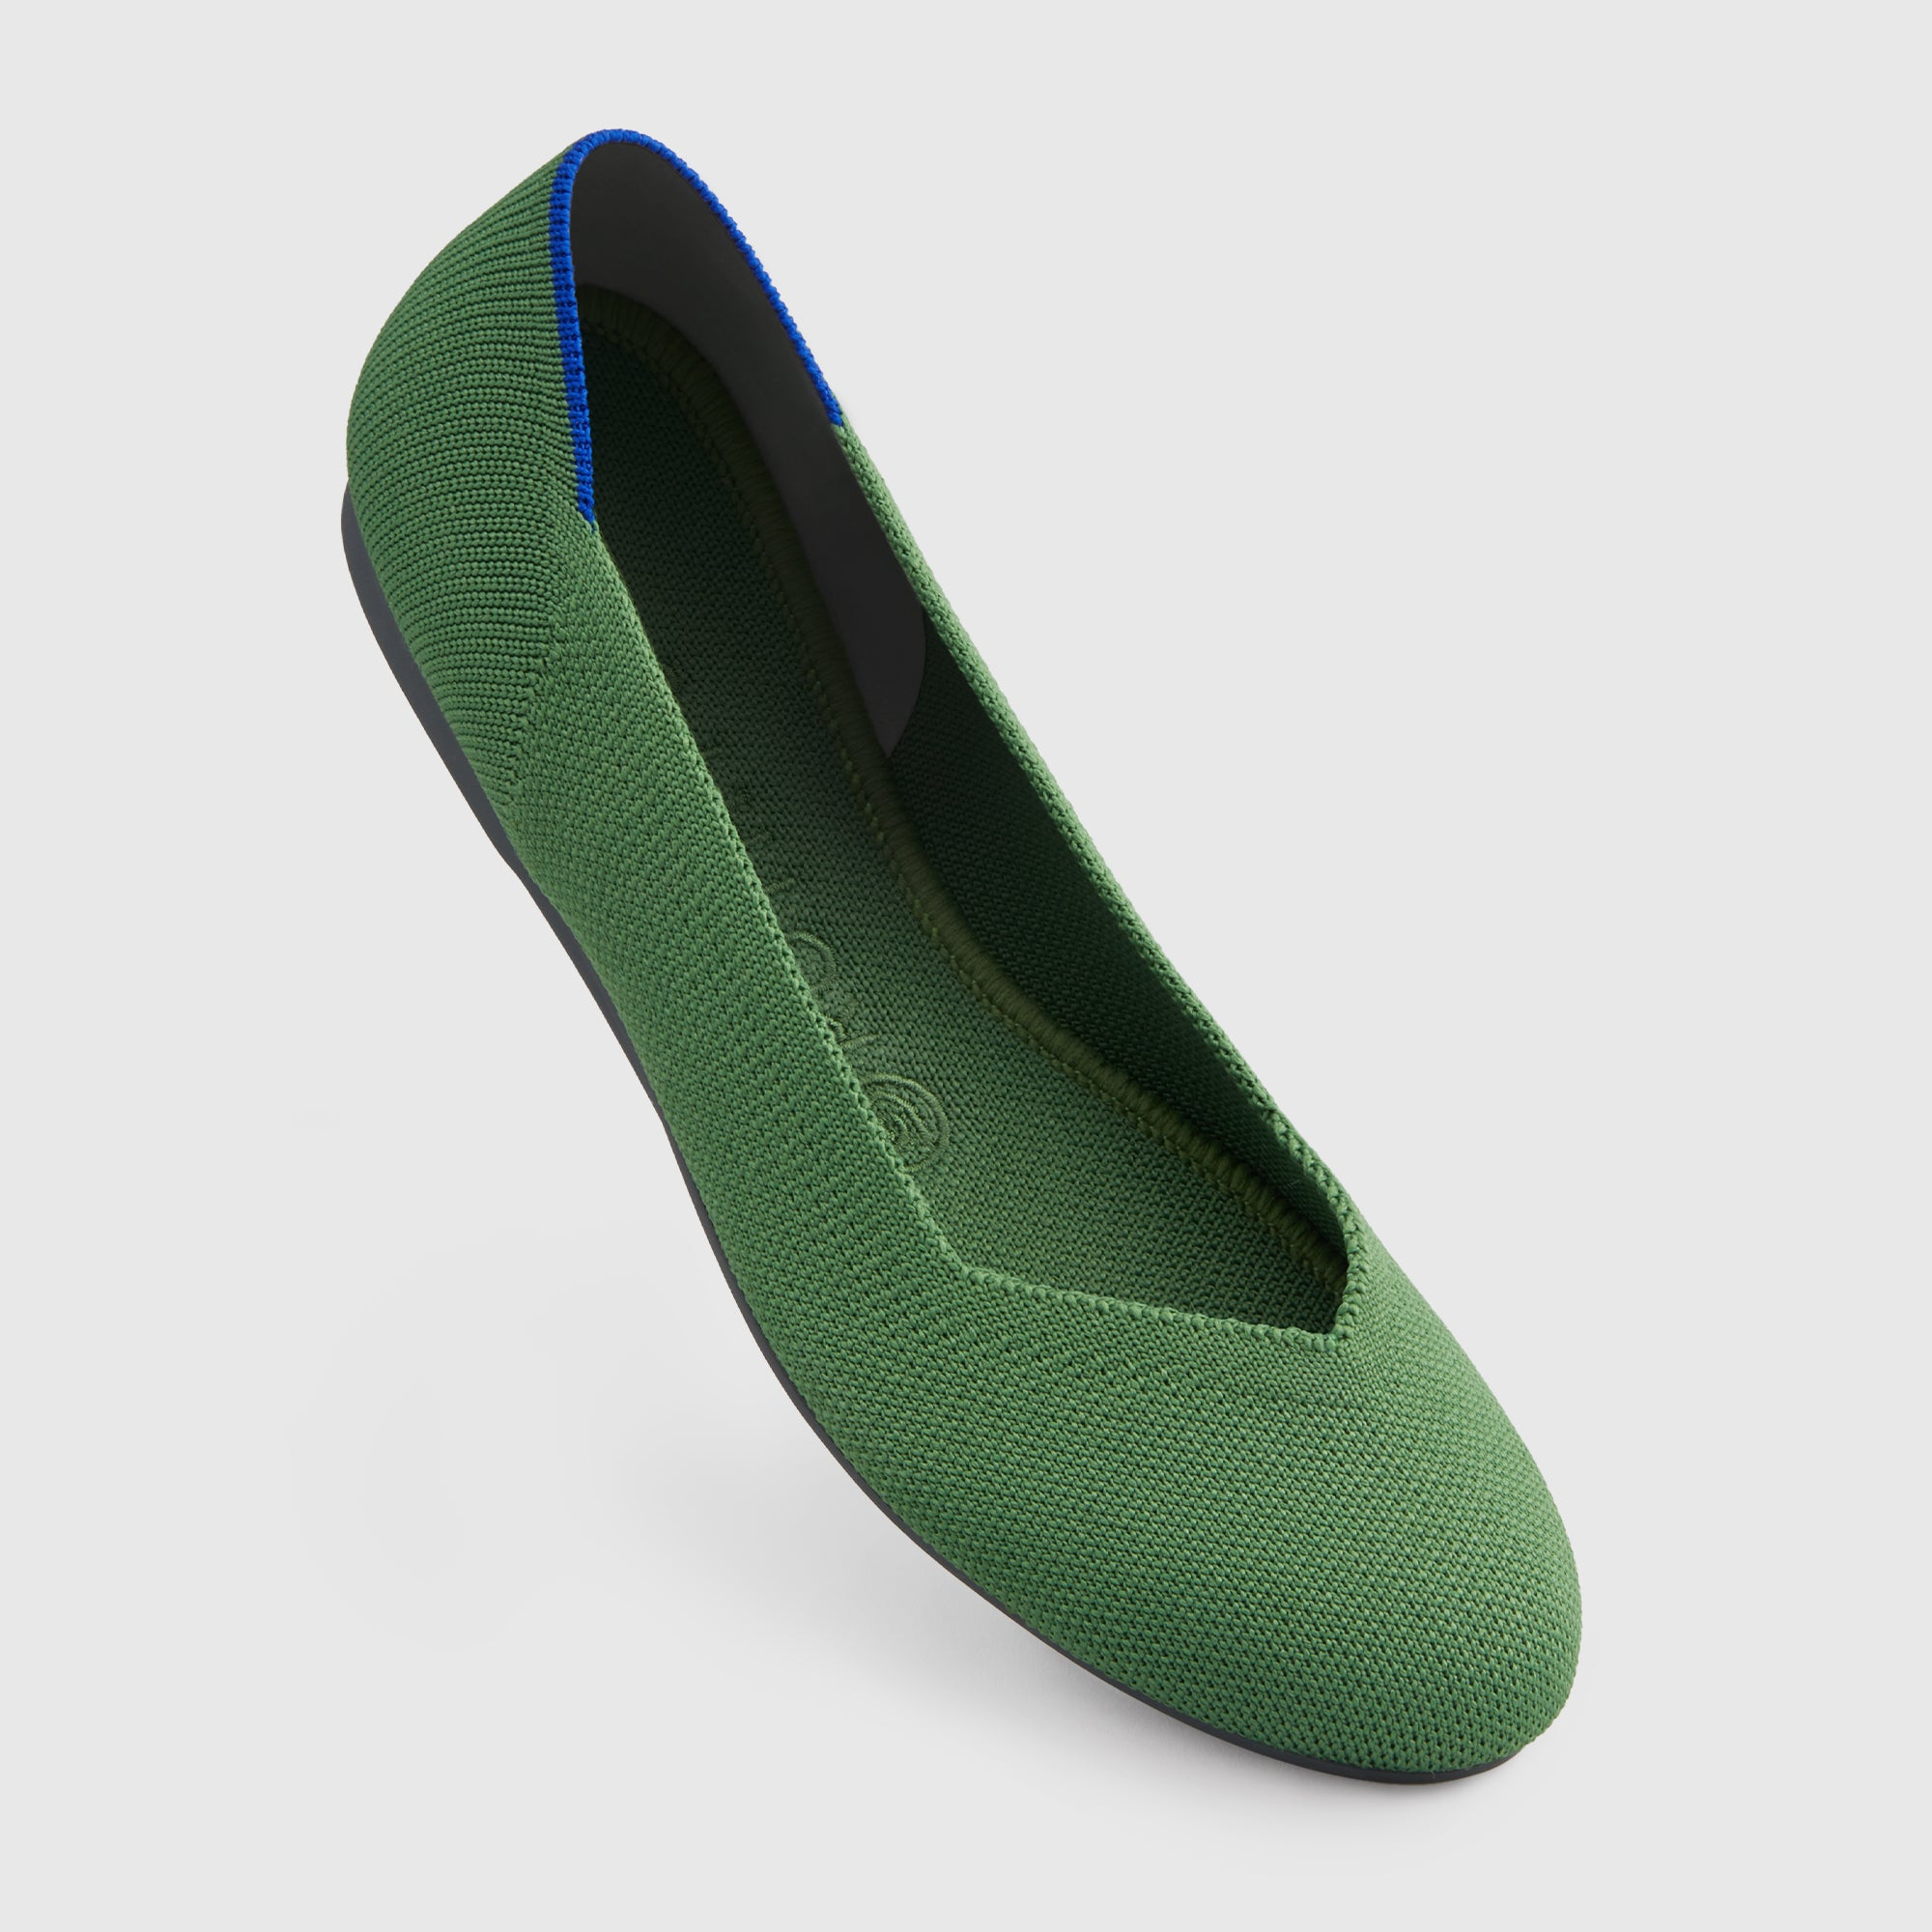 The Flat round toe shoe in Willow shown from the front at an angle.